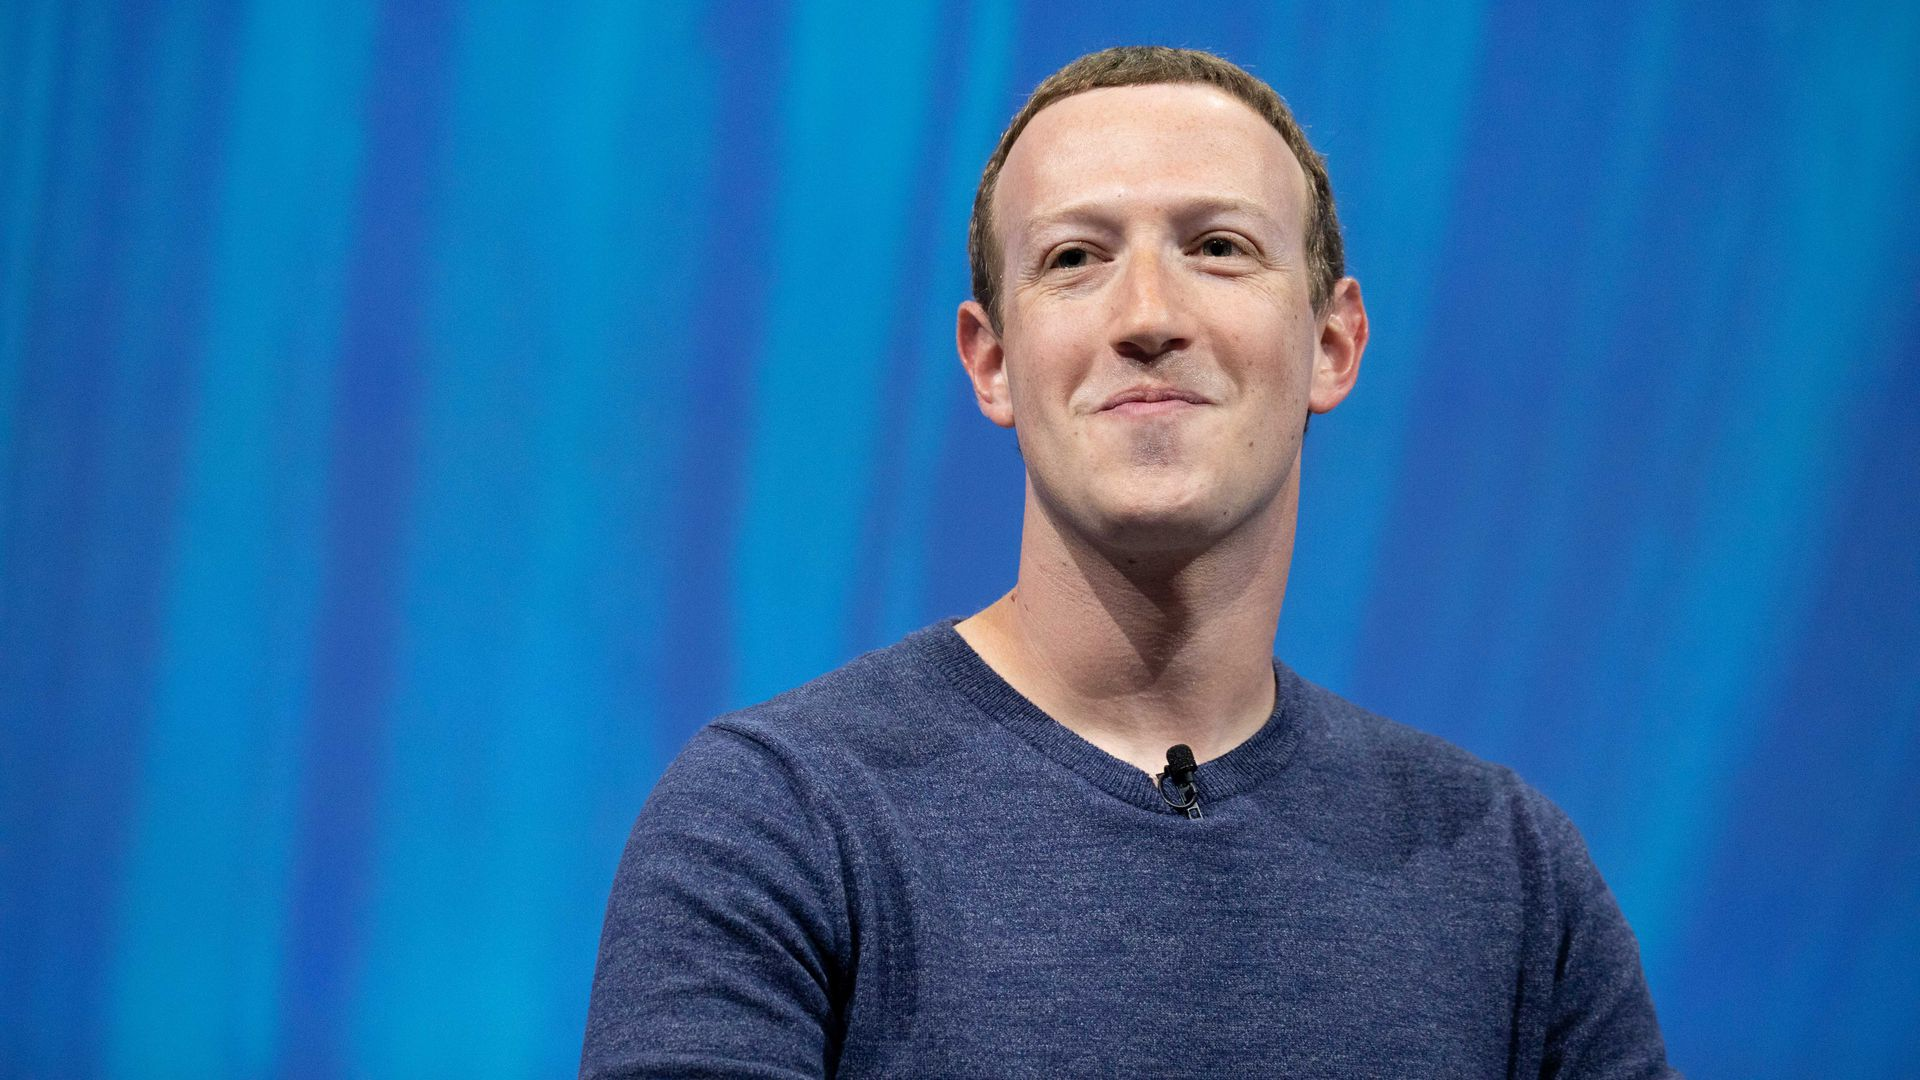 Facebook CEO Mark Zuckerberg with a half-smile on his face